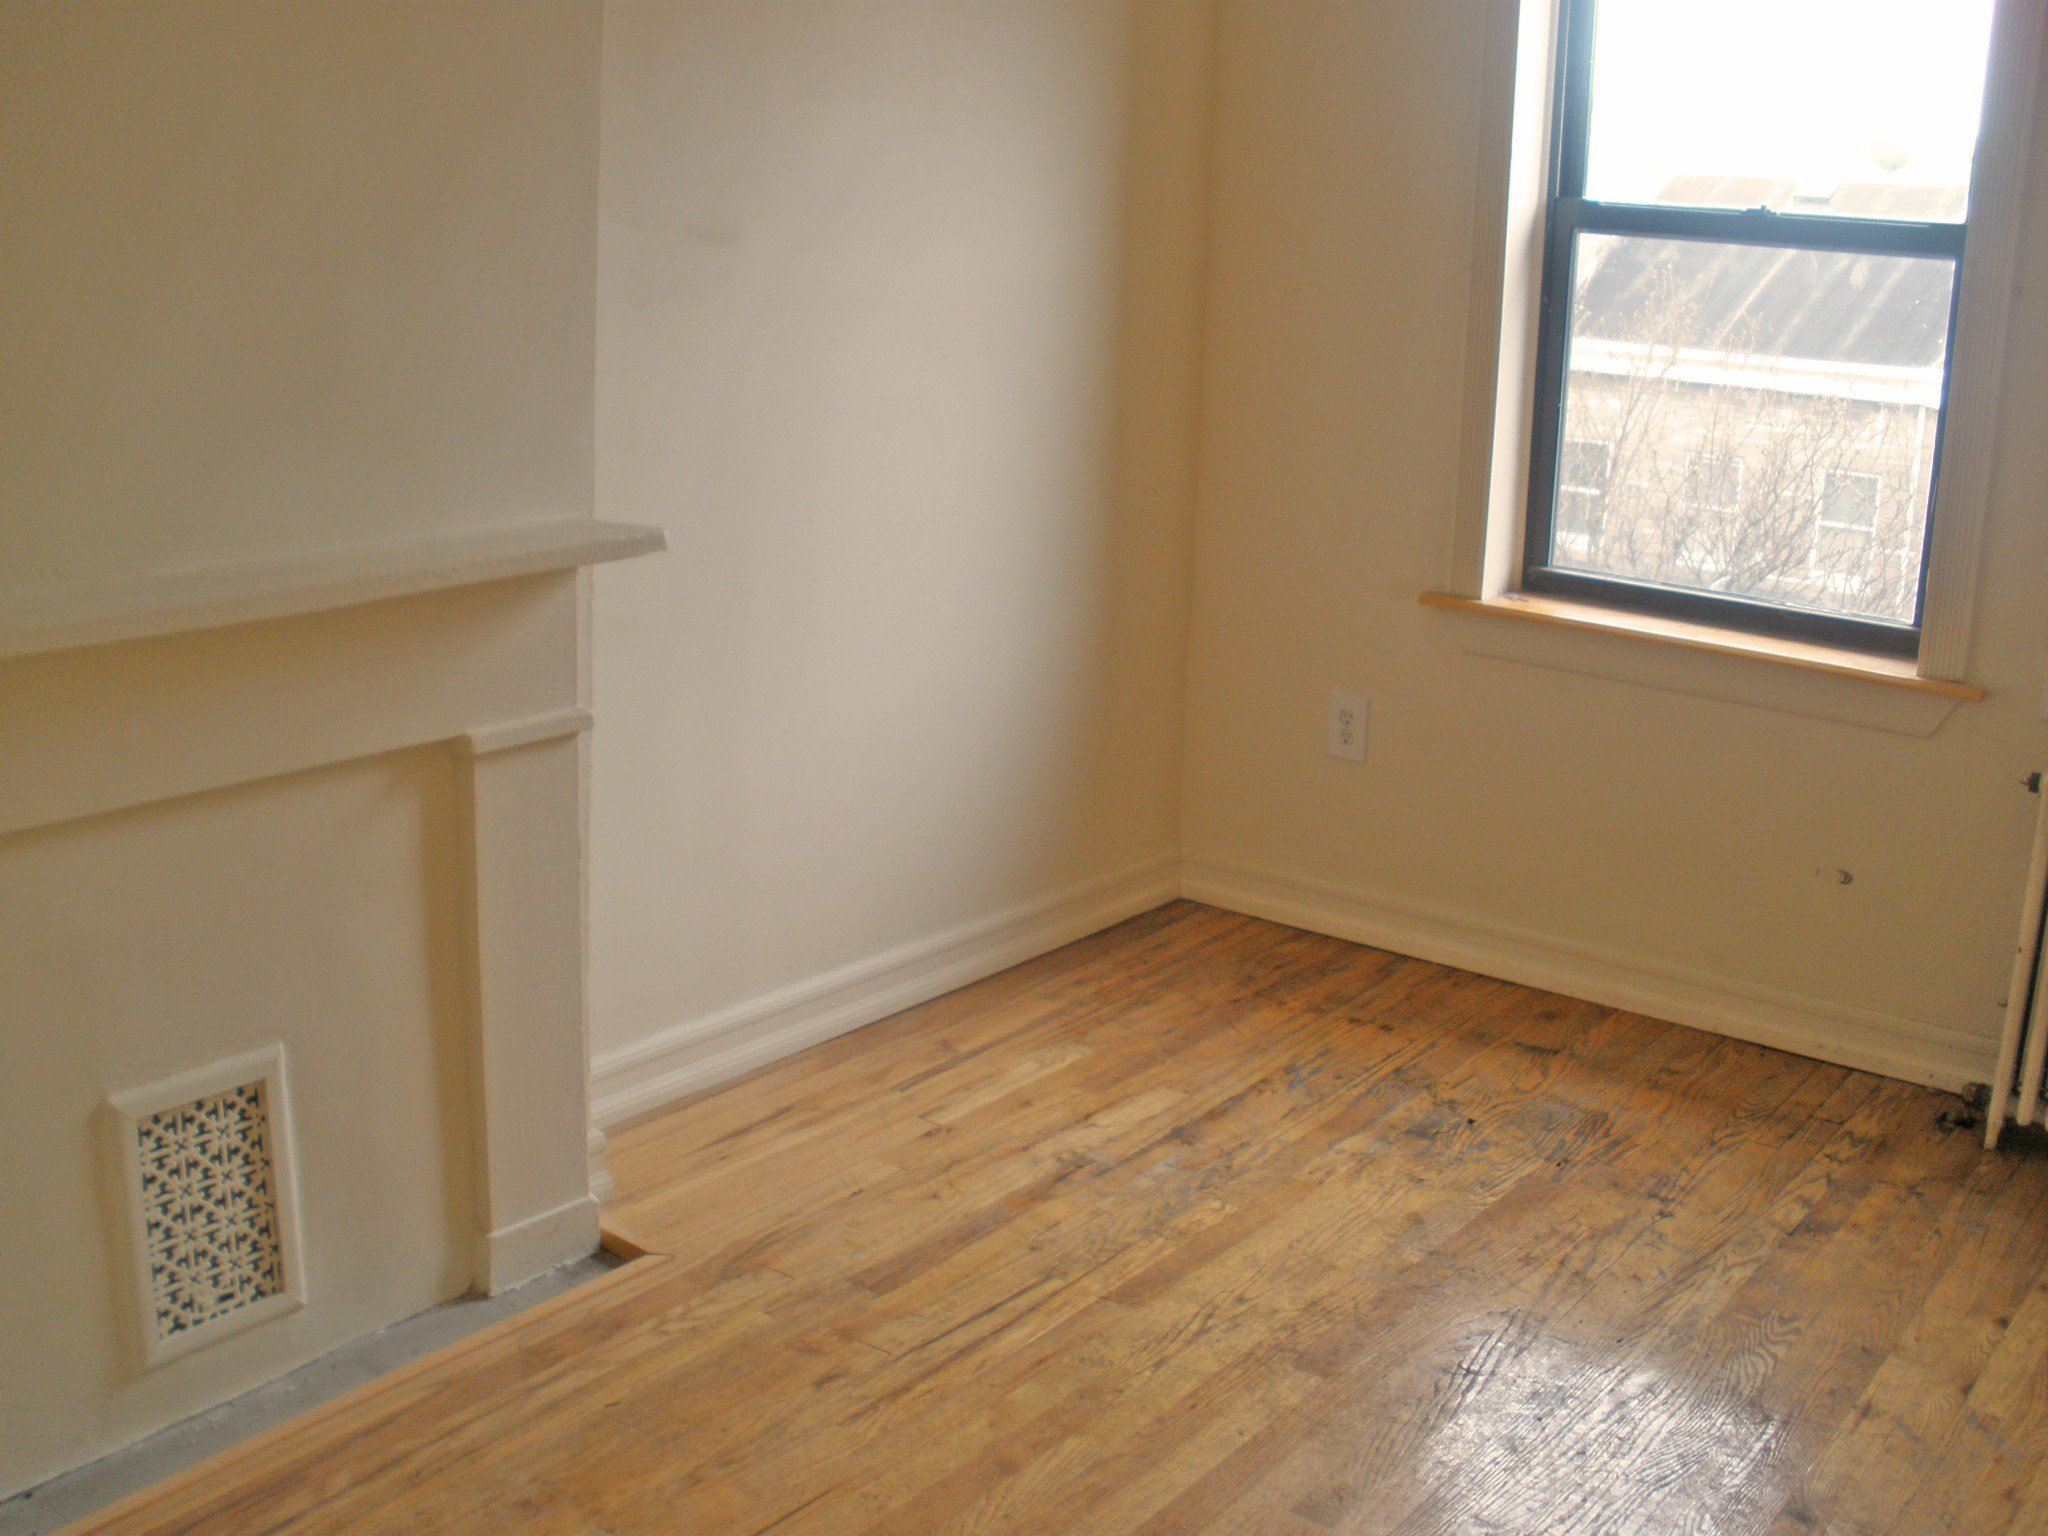 2 Bedroom Bed Stuy Apartment For Rent Brooklyn Crg3092